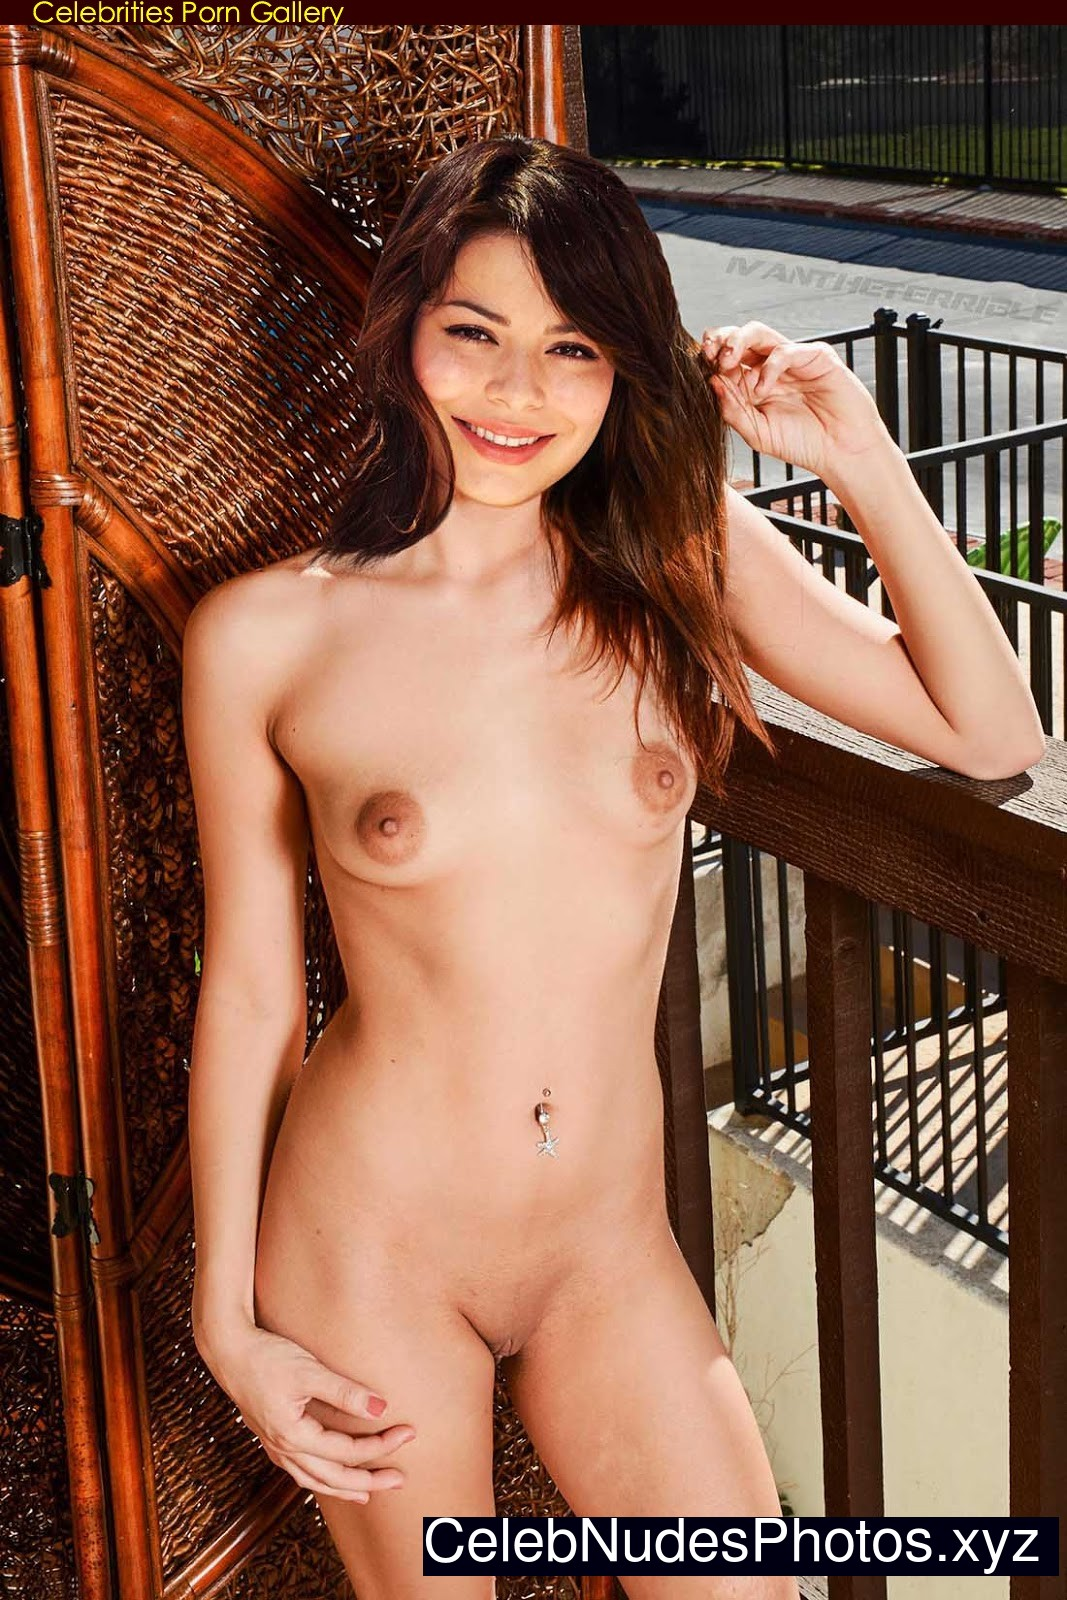 Seems brilliant Miranda cosgrove young nude opinion